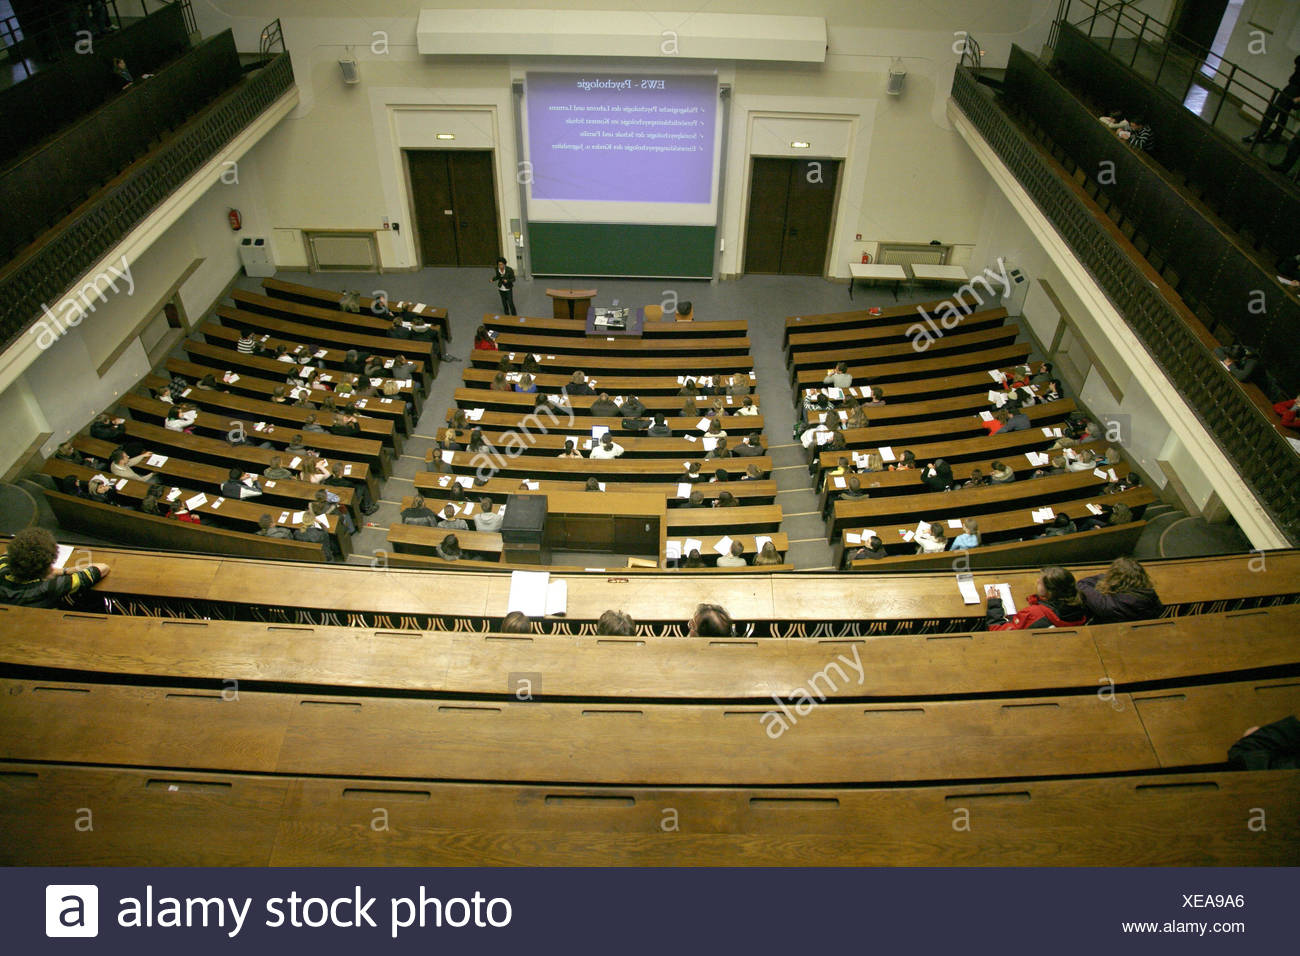 University, auditorium, lecture, student, from above, no model release, Germany, Bavarians, Munich, LMU, inside, main lecture hall, Ludwig's Maximilian university, talk, lecturer, person, saddles, rows, projection, education, education, study, educational chance, university education, science, future chance, - Stock Image